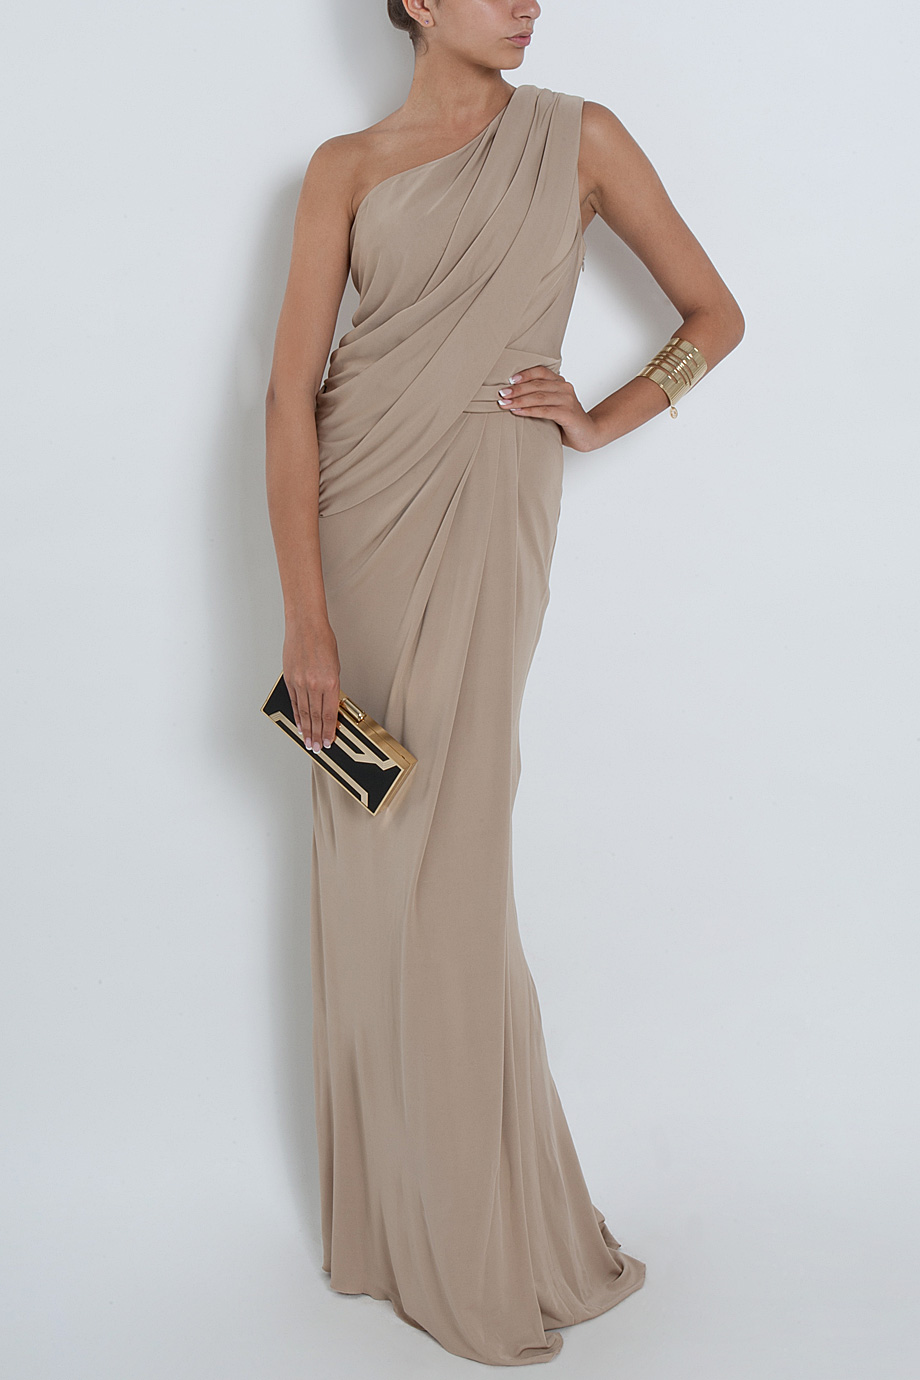 Lyst - Elie Saab One Shoulder Draped Gown in Natural